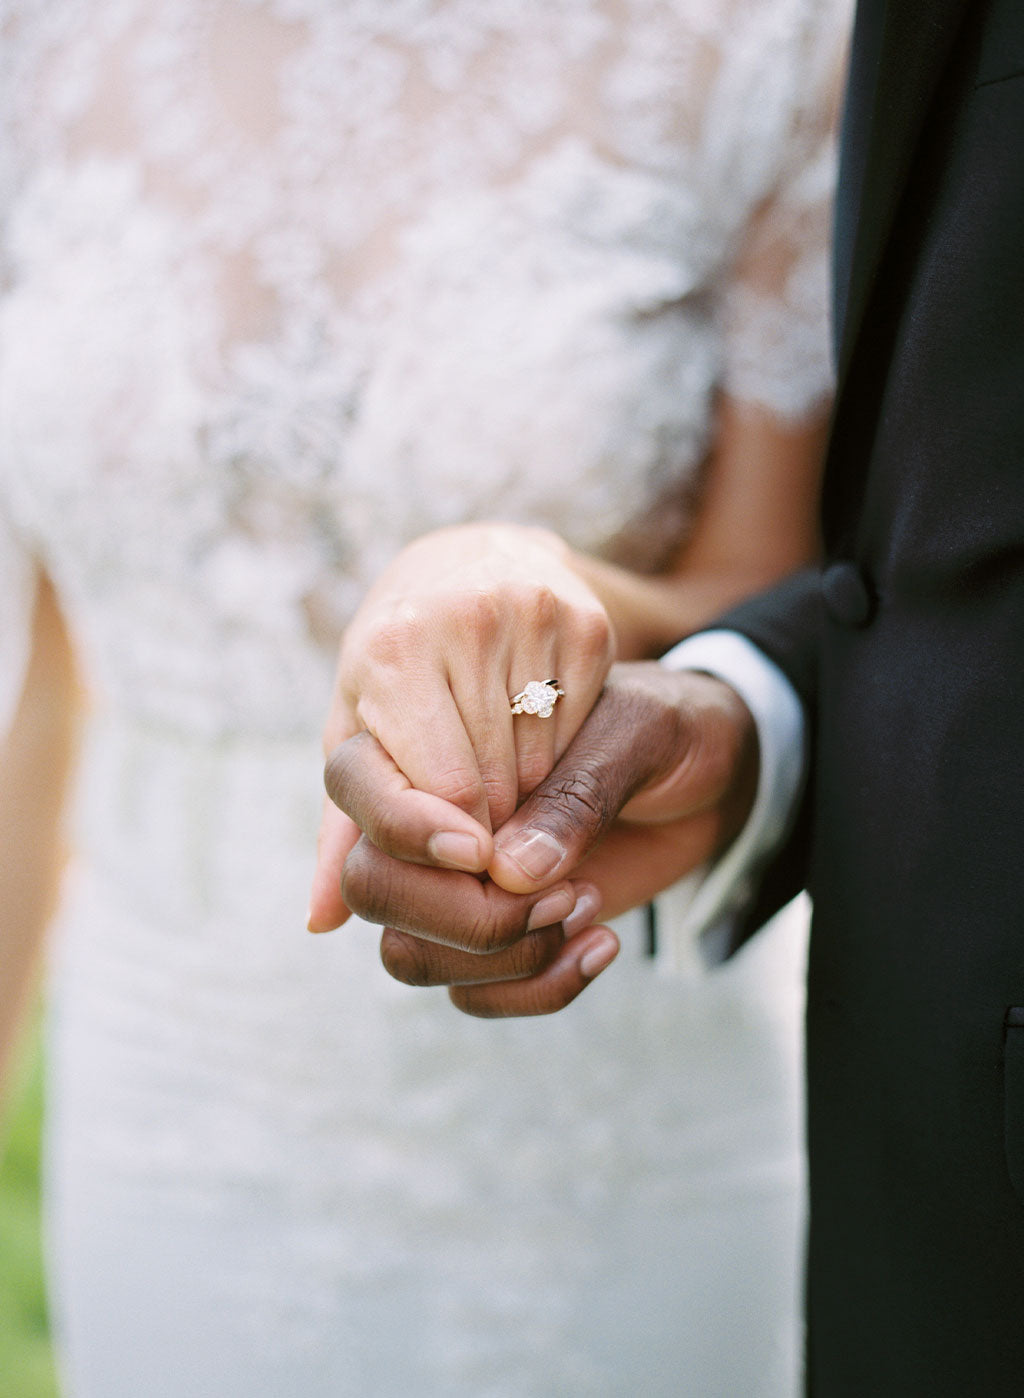 Wedding couple holding hands wedding ring shown